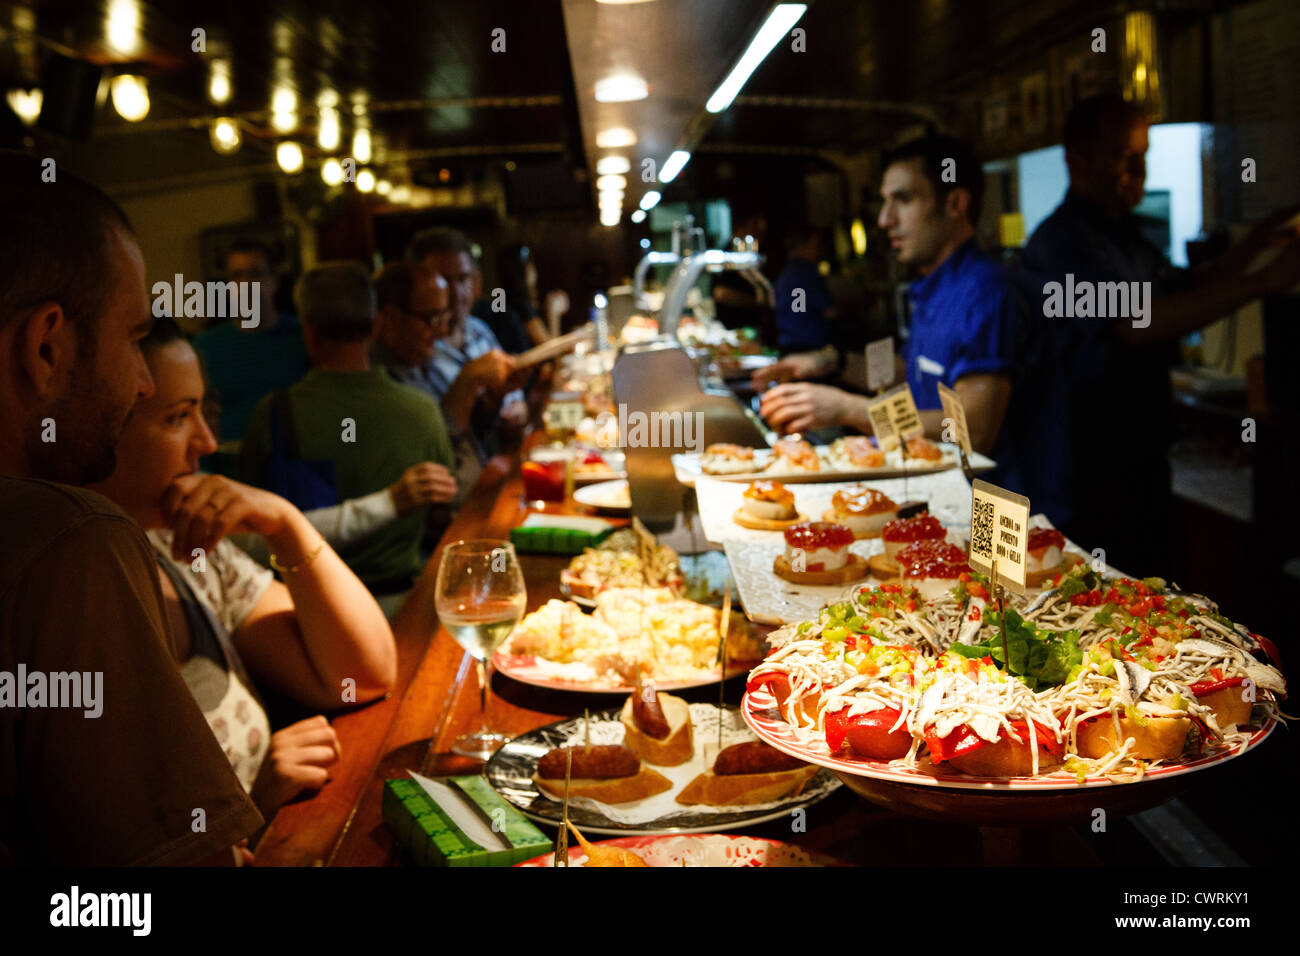 30 8 12 tapas bar txalupa c ferm n calbet n san sebasti n spain stock photo royalty free for Cuisine bar tapas